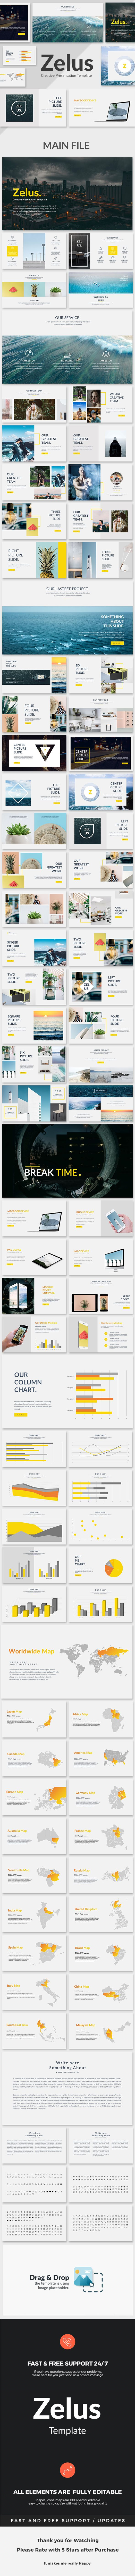 Zelus - Creative Google Slide Template